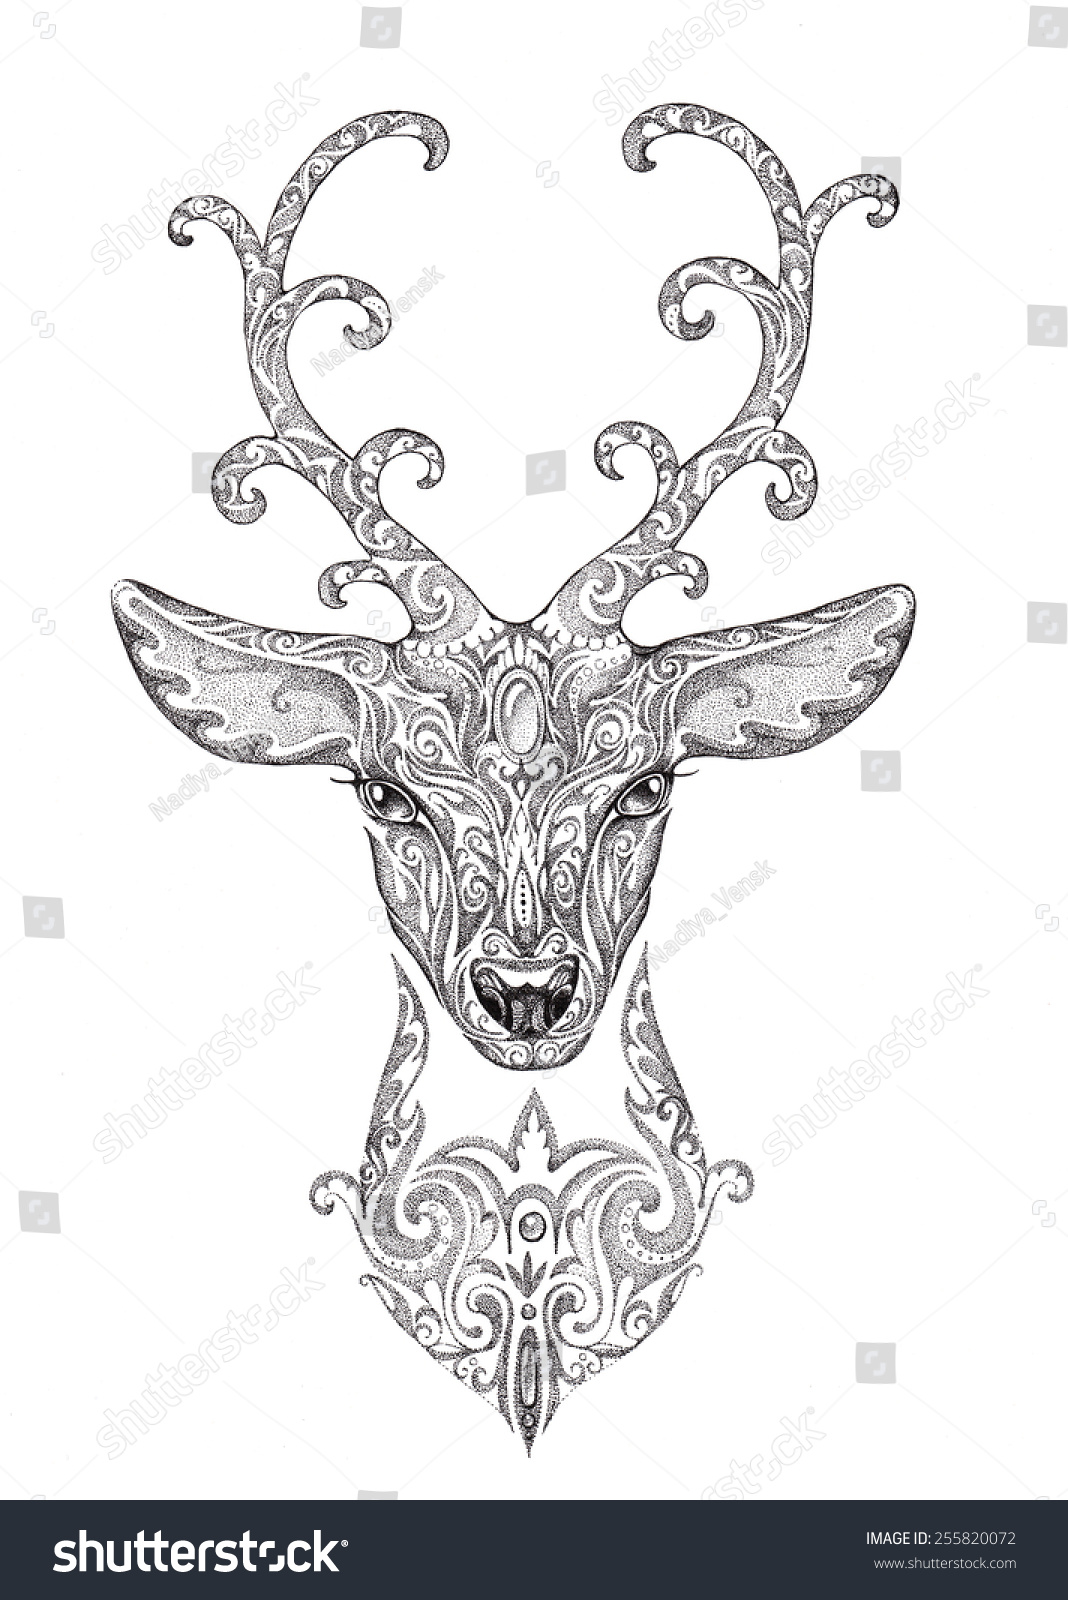 Stock Photo Stylized Image Of A Beautiful Forest Deer Head With Horns